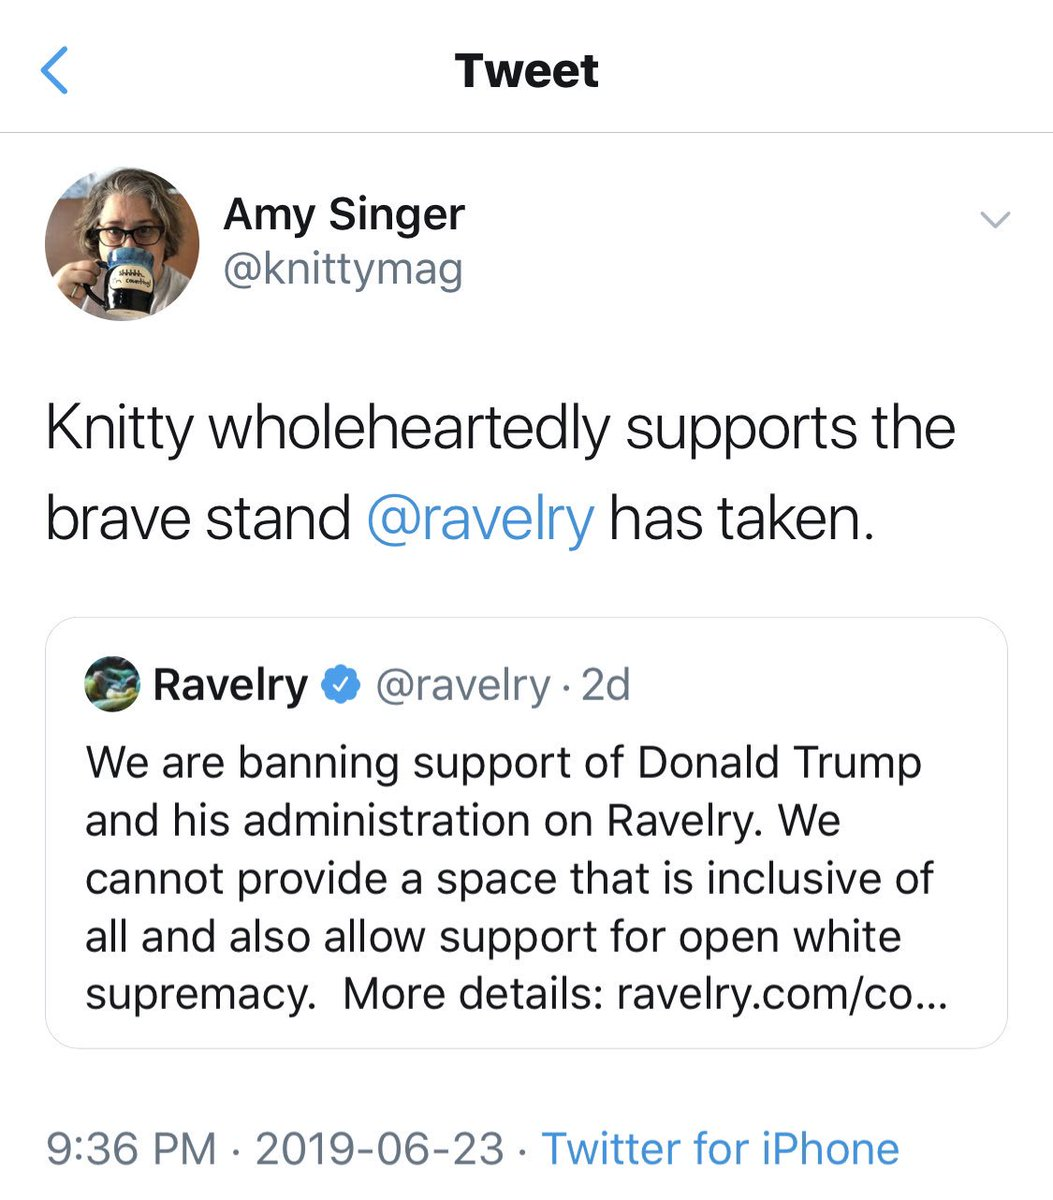 I just responded to someone claiming to be representing a large group of conservative knitters and crocheters, asking if Knitty supports @ravelry's decison. The answer is still yes. Knitty is about inclusion, and IMO, this policy is about making inclusiveness SAFE.